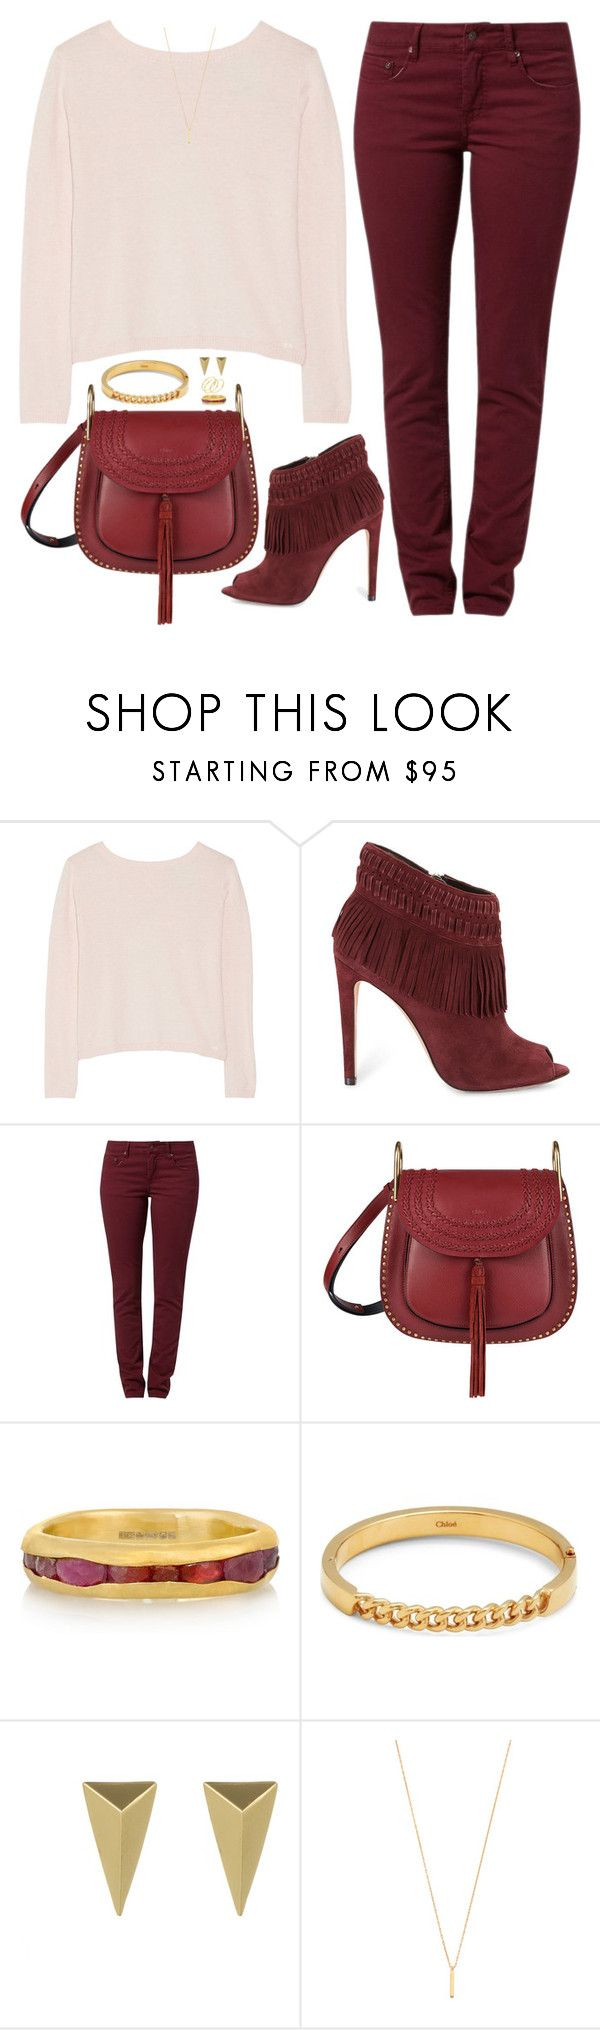 """""""Untitled 253 (Fall/Winter)"""" by maddkat ❤ liked on Polyvore featuring Banjo & Matilda, Rebecca Minkoff, TURNOVER, Chloé, Pippa Small, Alexis Bittar, Kristen Elspeth and Tada & Toy"""